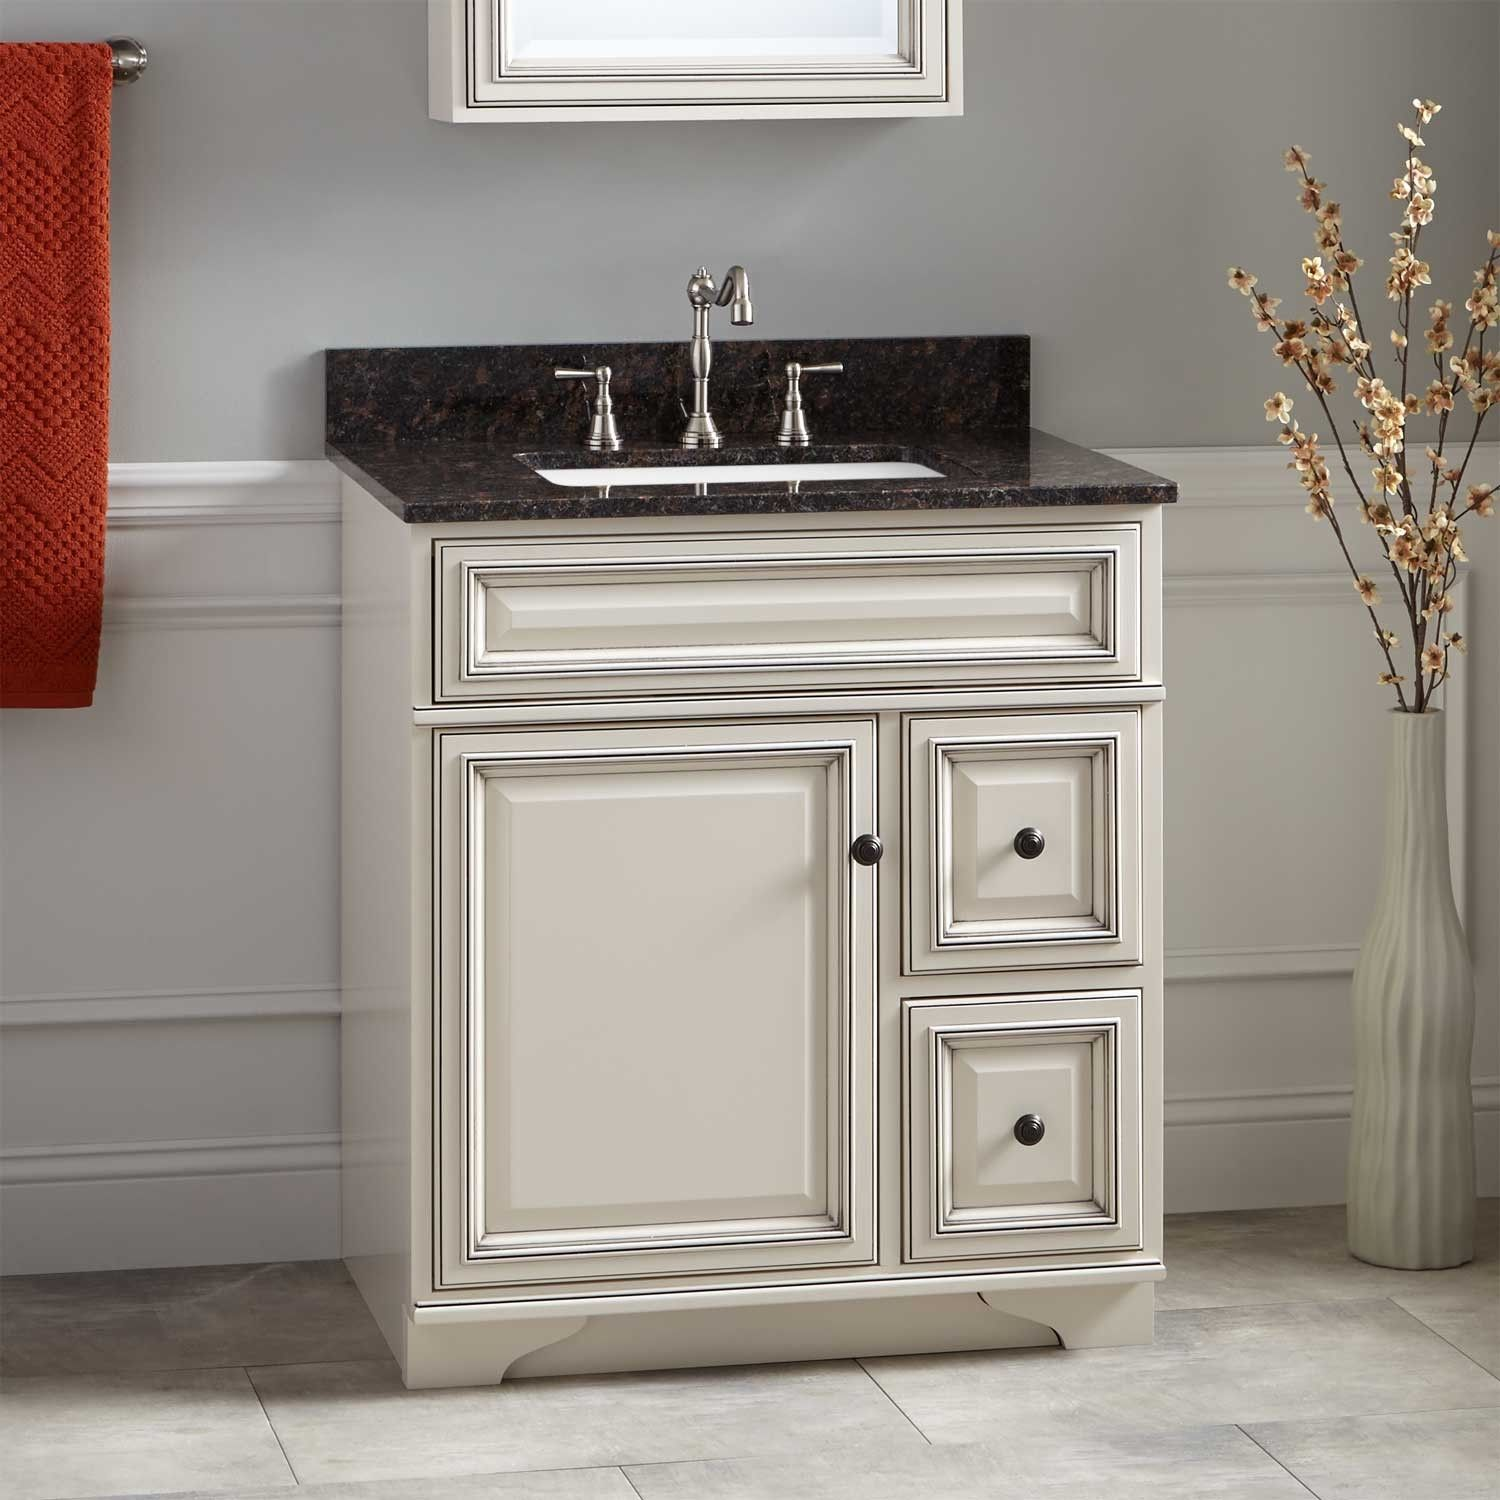 48 Inch f White Bathroom Vanity 60 Inch f White Bathroom Vanity